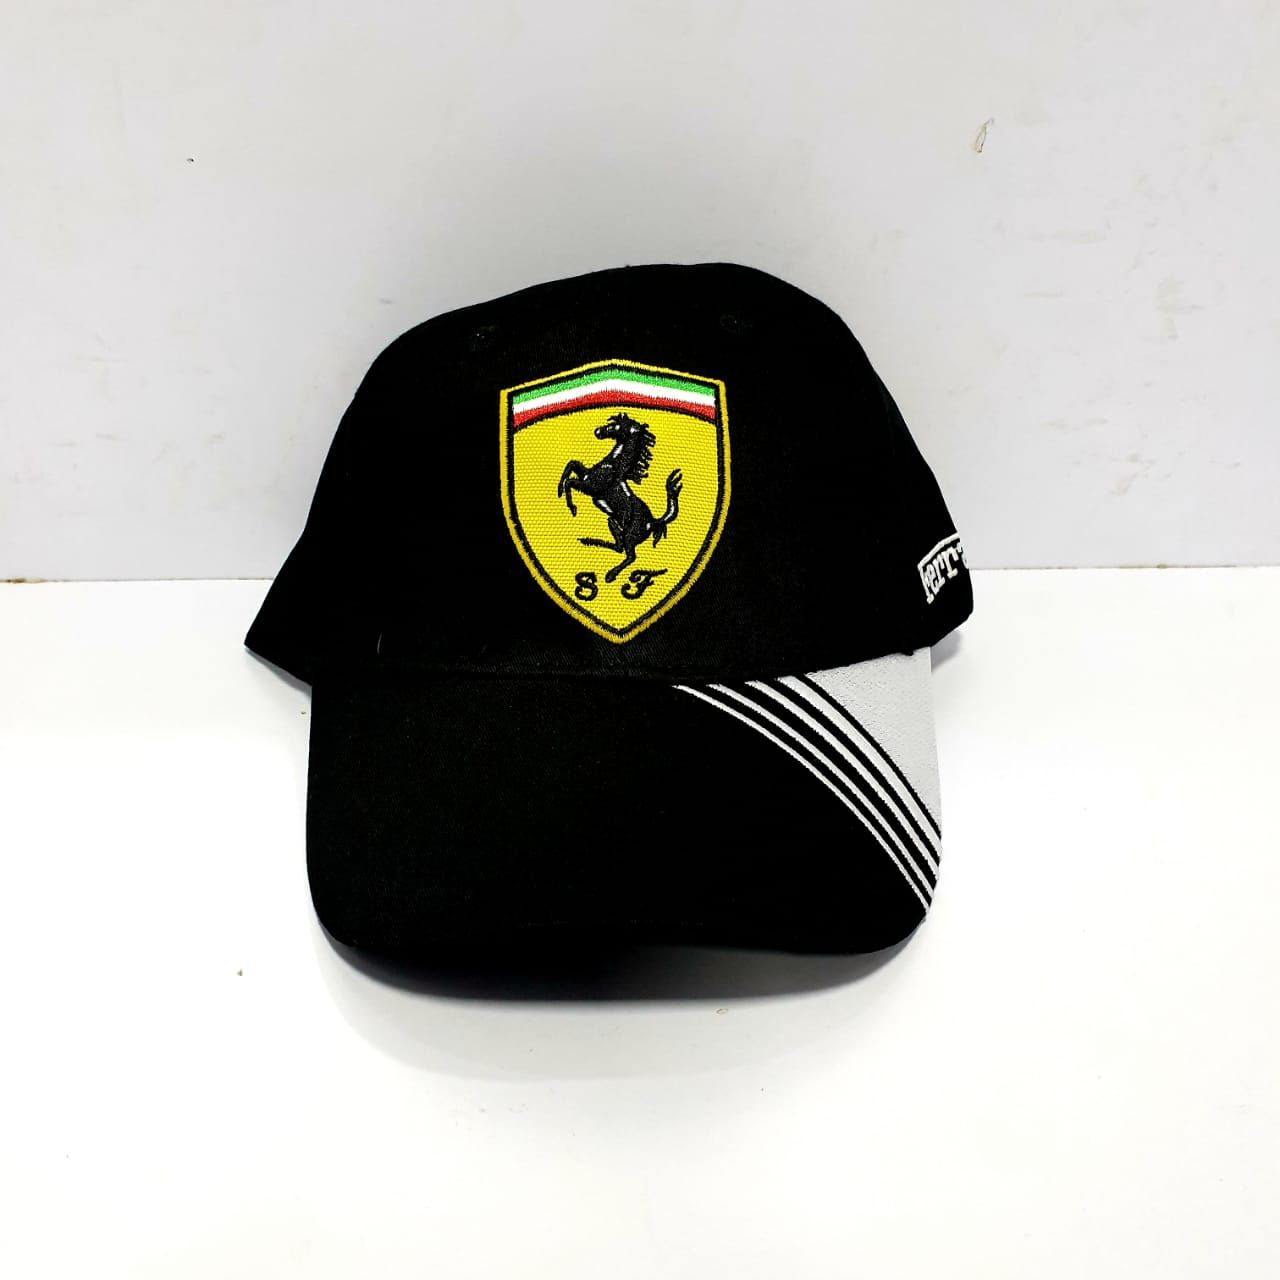 Ferrari Black Caps